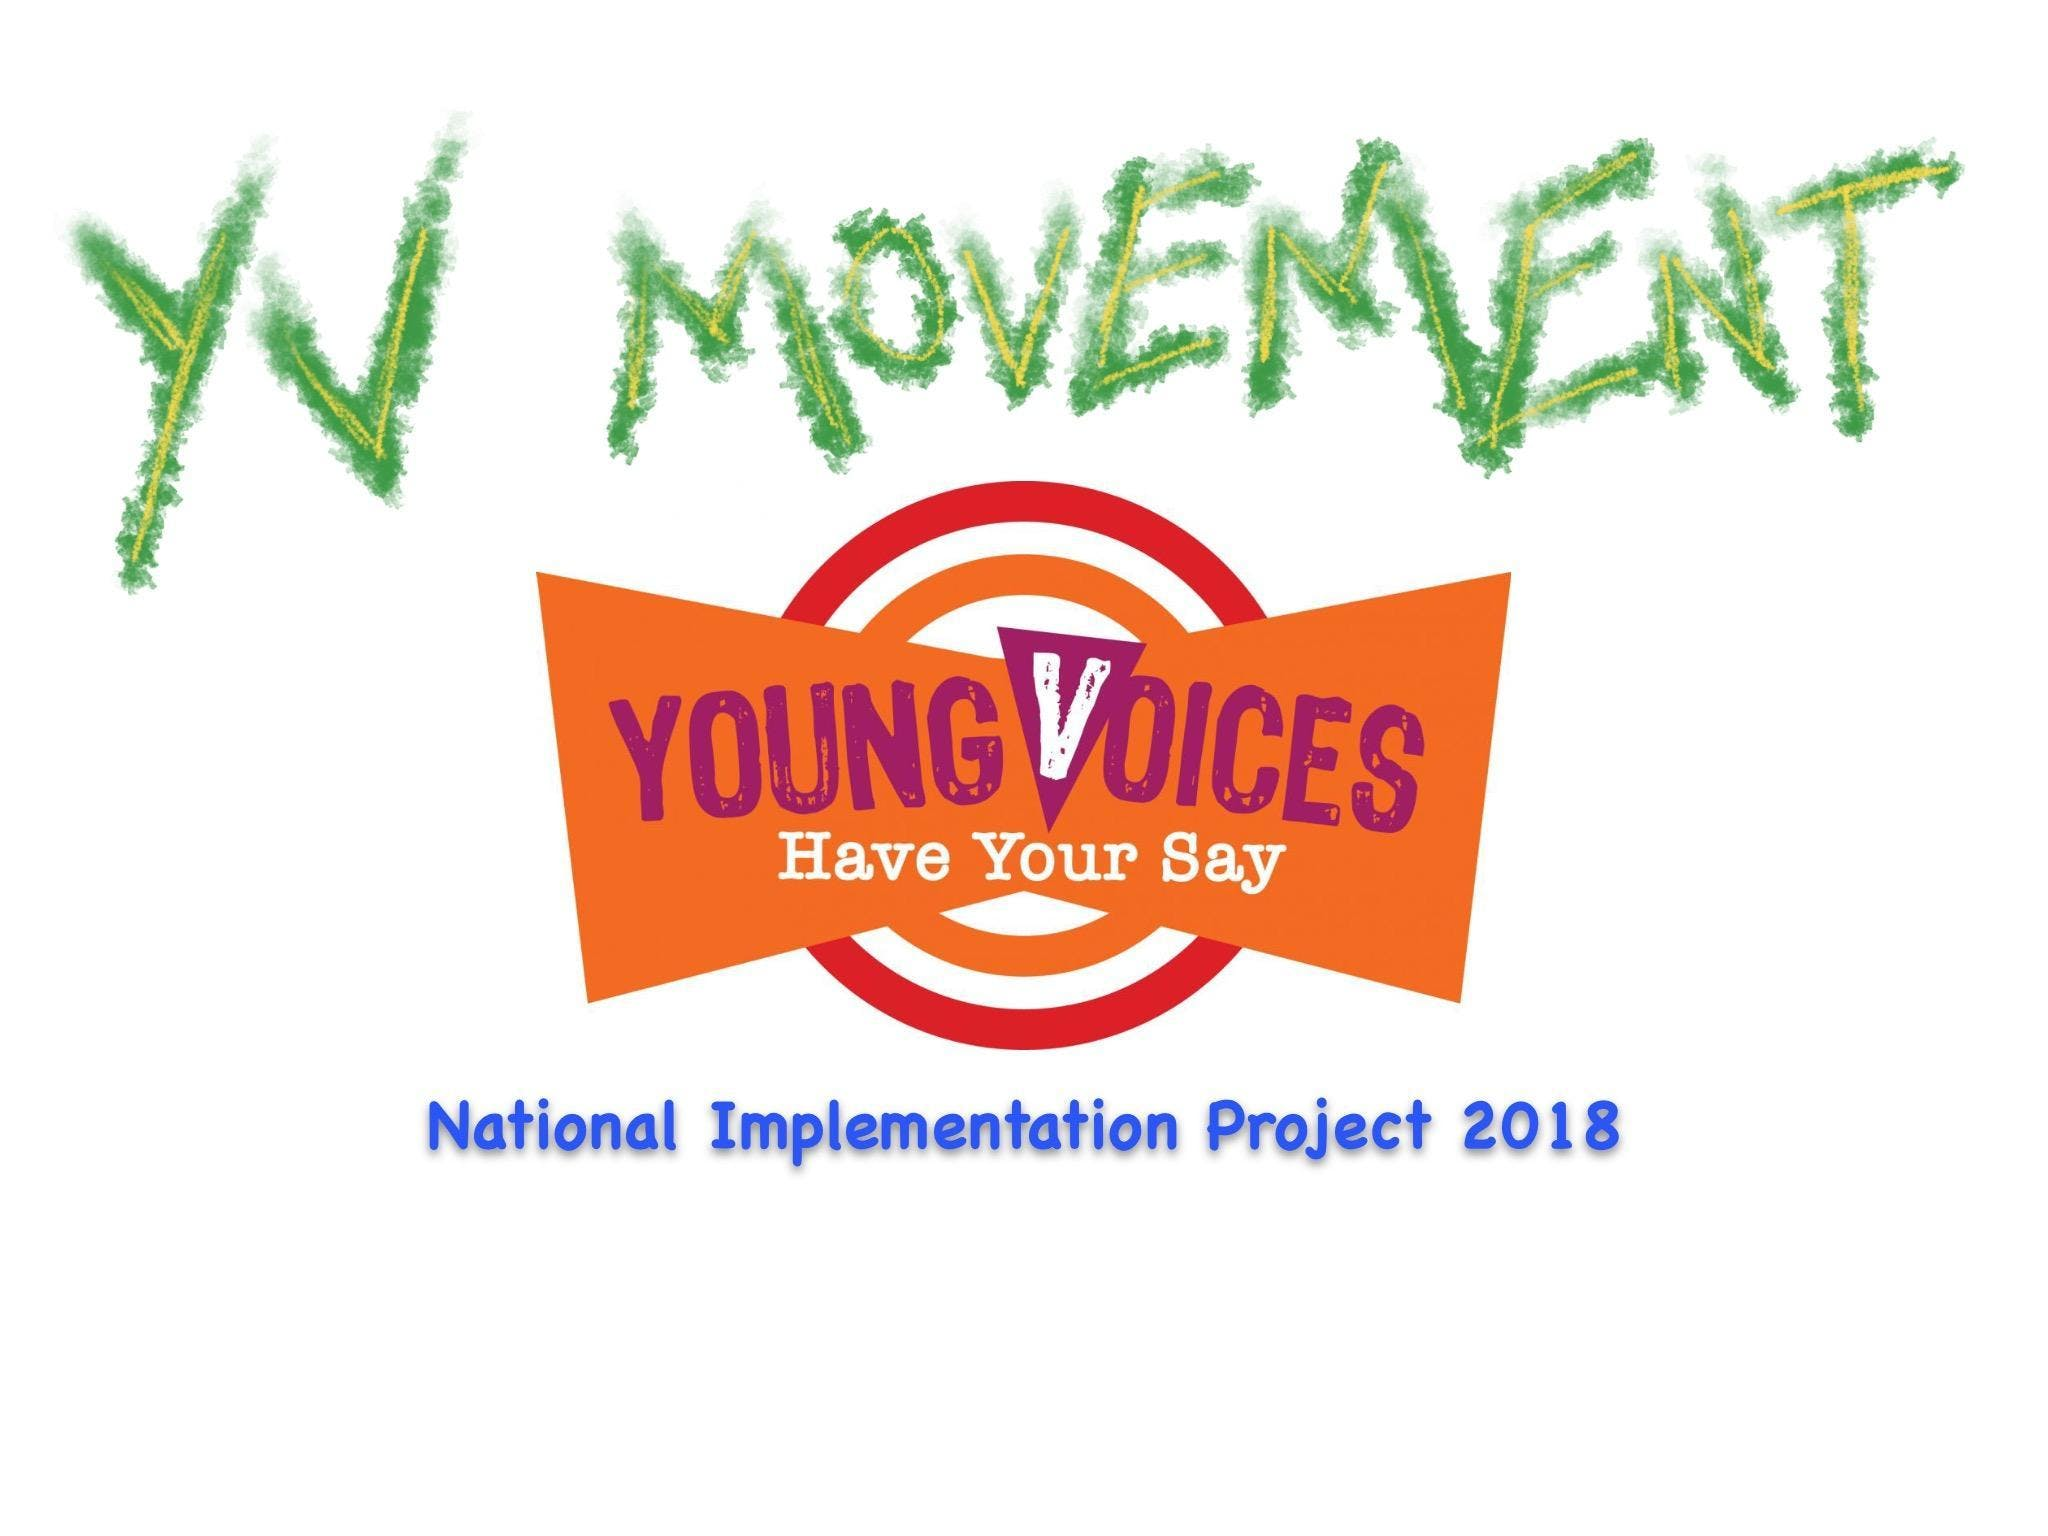 Young Voices 'National Implementation Project' 2018